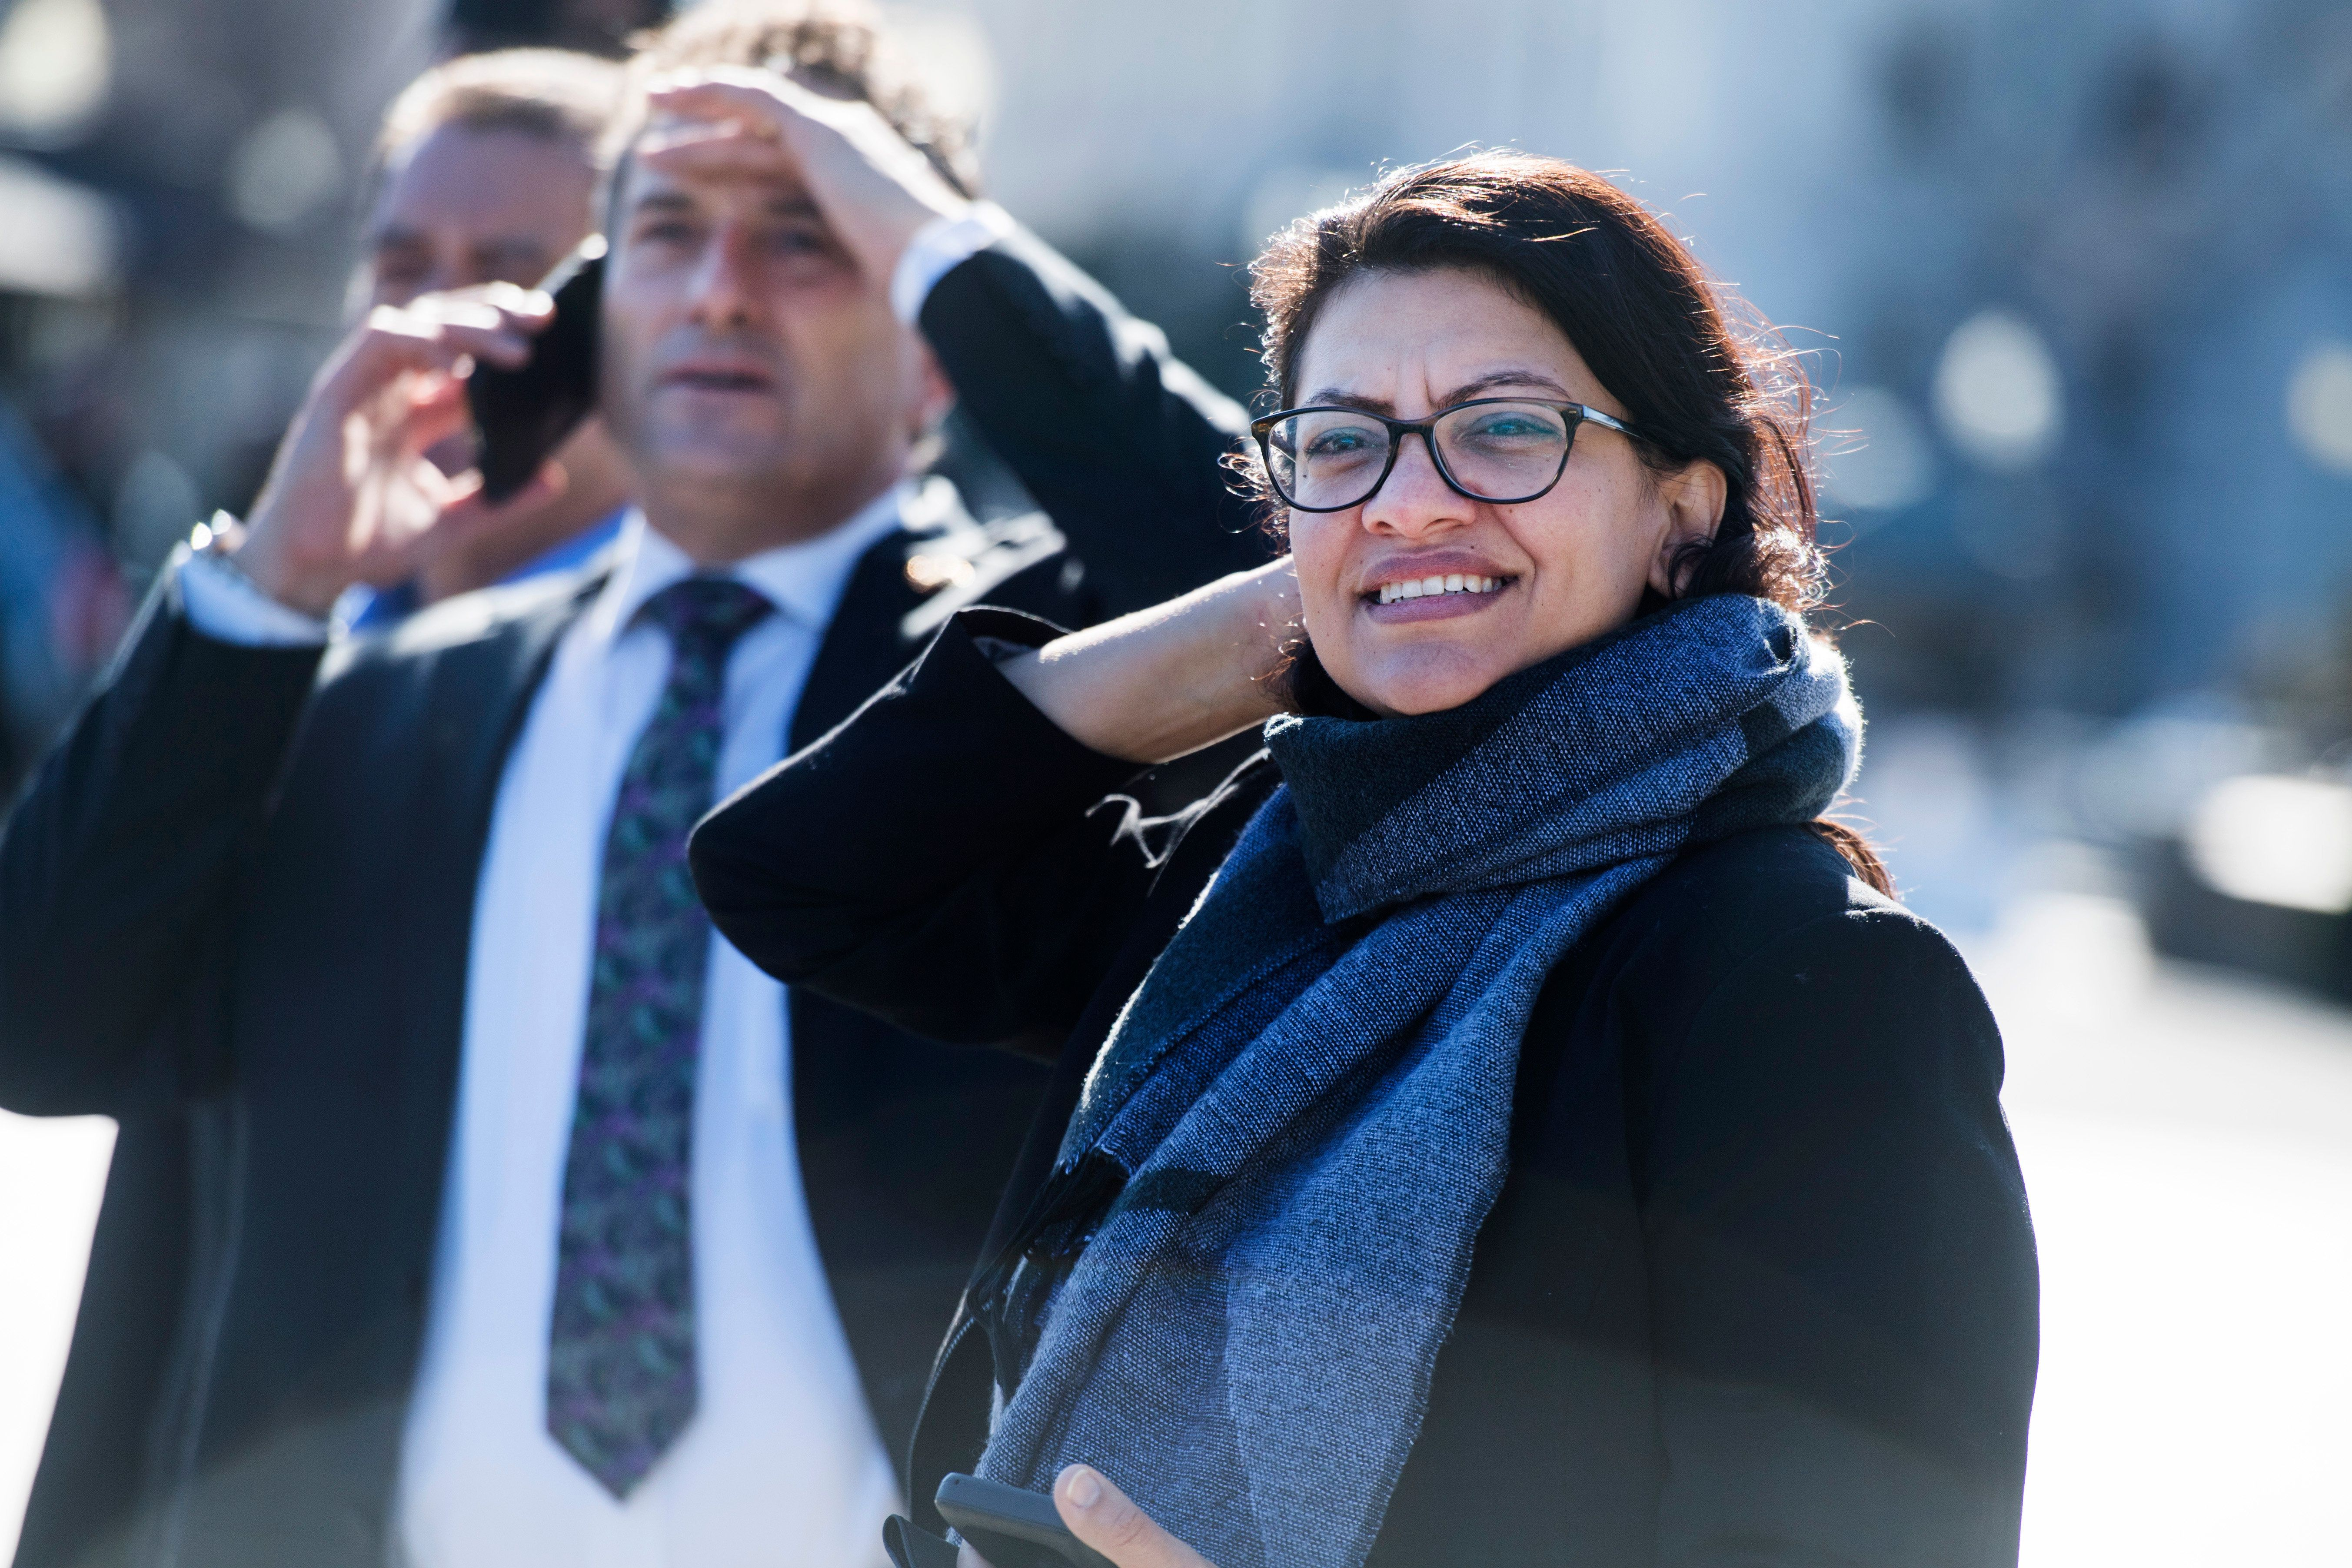 UNITED STATES - JANUARY 11: Reps. Rashida Tlaib, D-Mich., and Andy Levin, D-Mich., are seen outside the Capitol after the last votes of the week in the House on January 11, 2019. (Photo By Tom Williams/CQ Roll Call)